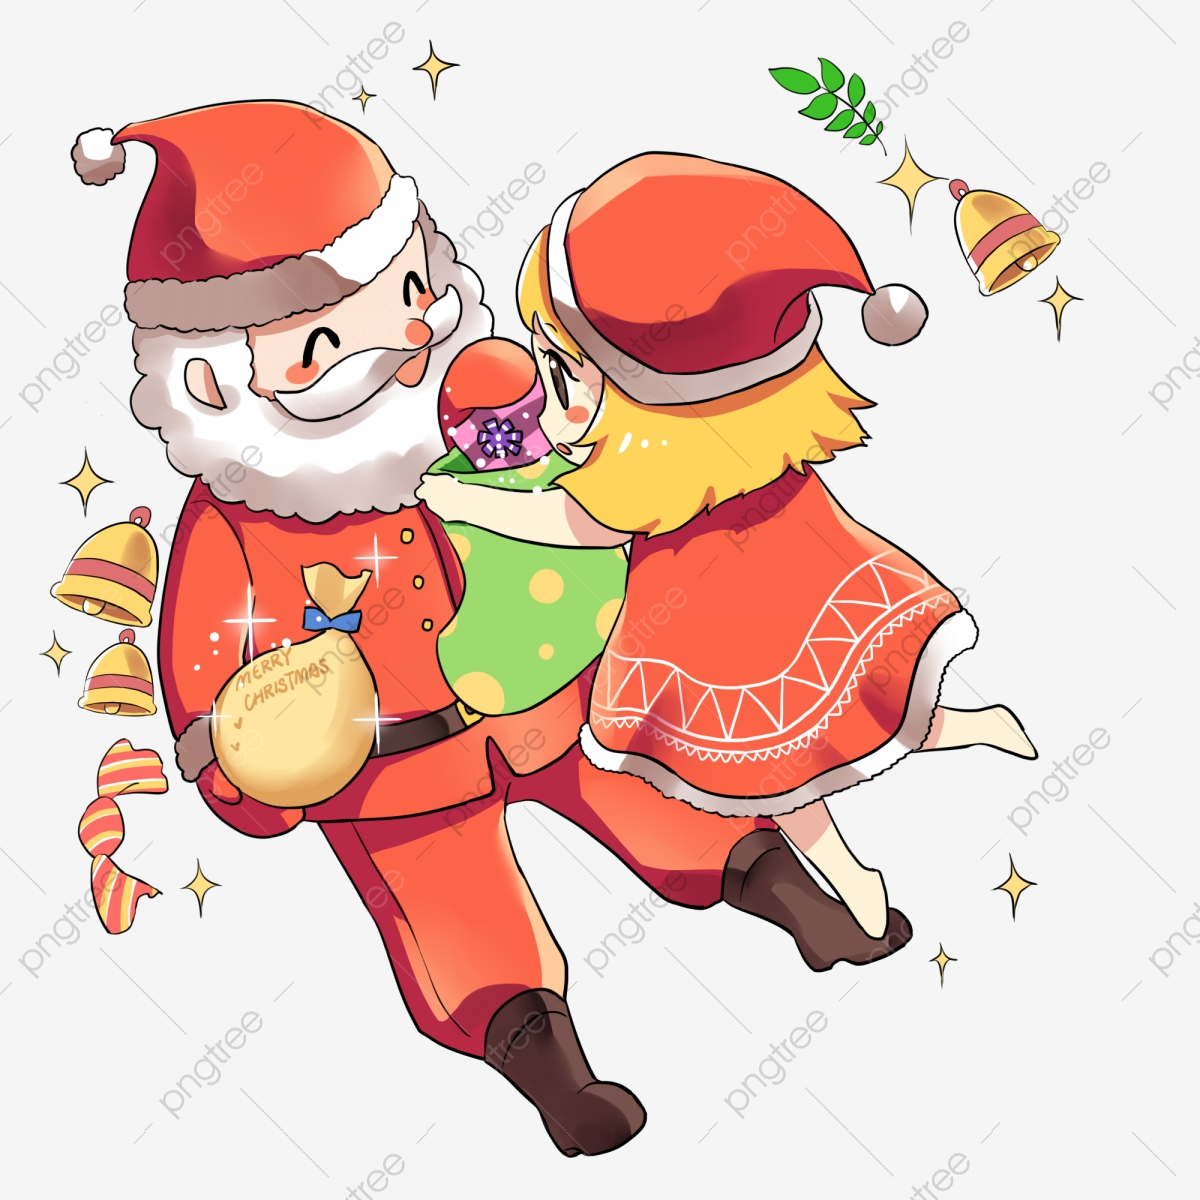 Free christmas traditional. Cartoon girl giving a